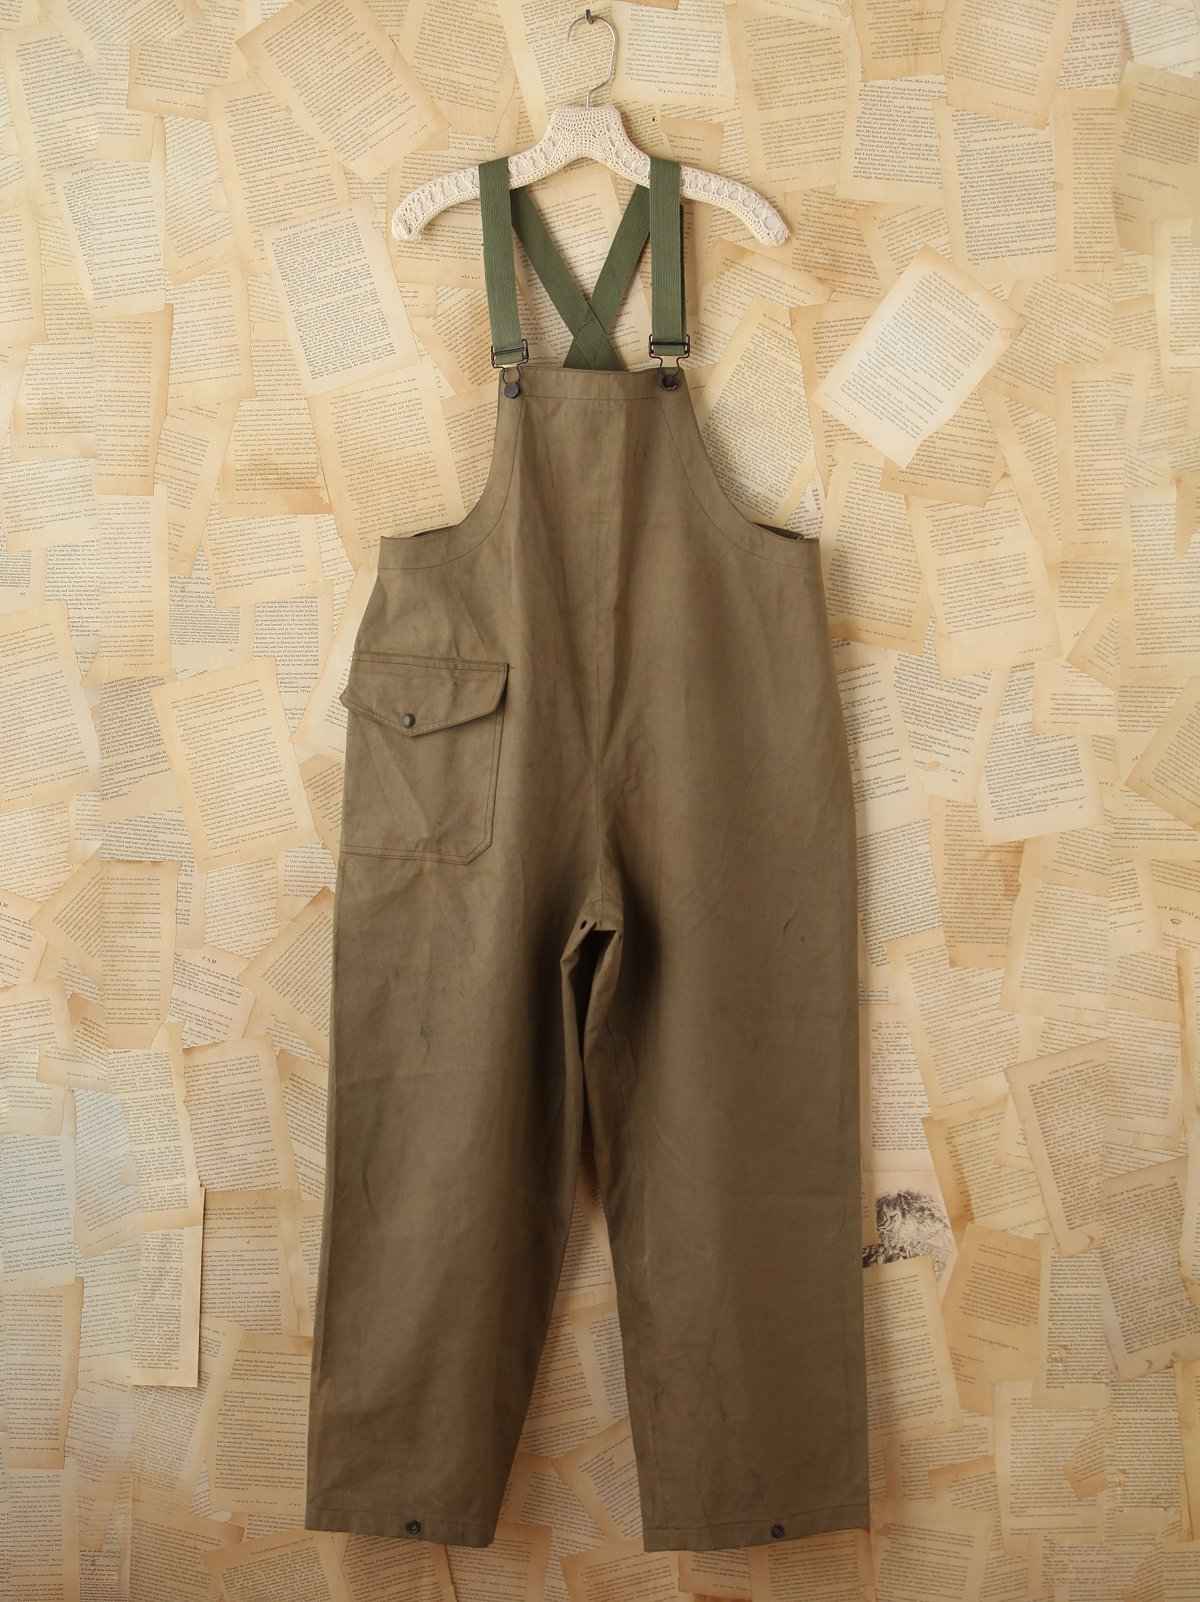 Vintage Army Green Overalls